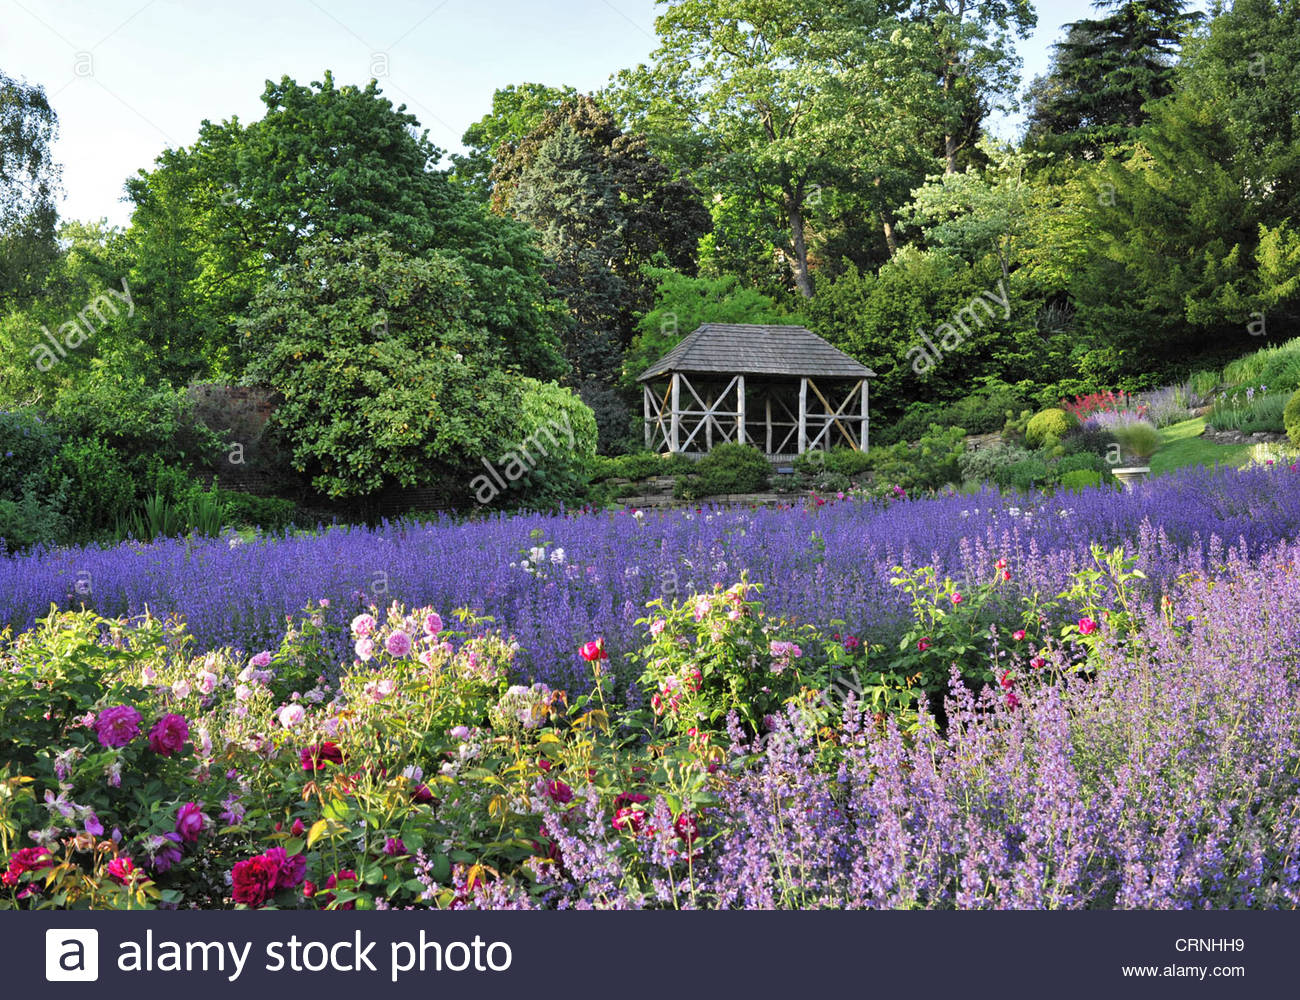 lavendel und rosen blume betten terrasse garten in richmond london uk stockfoto bild 49032629. Black Bedroom Furniture Sets. Home Design Ideas